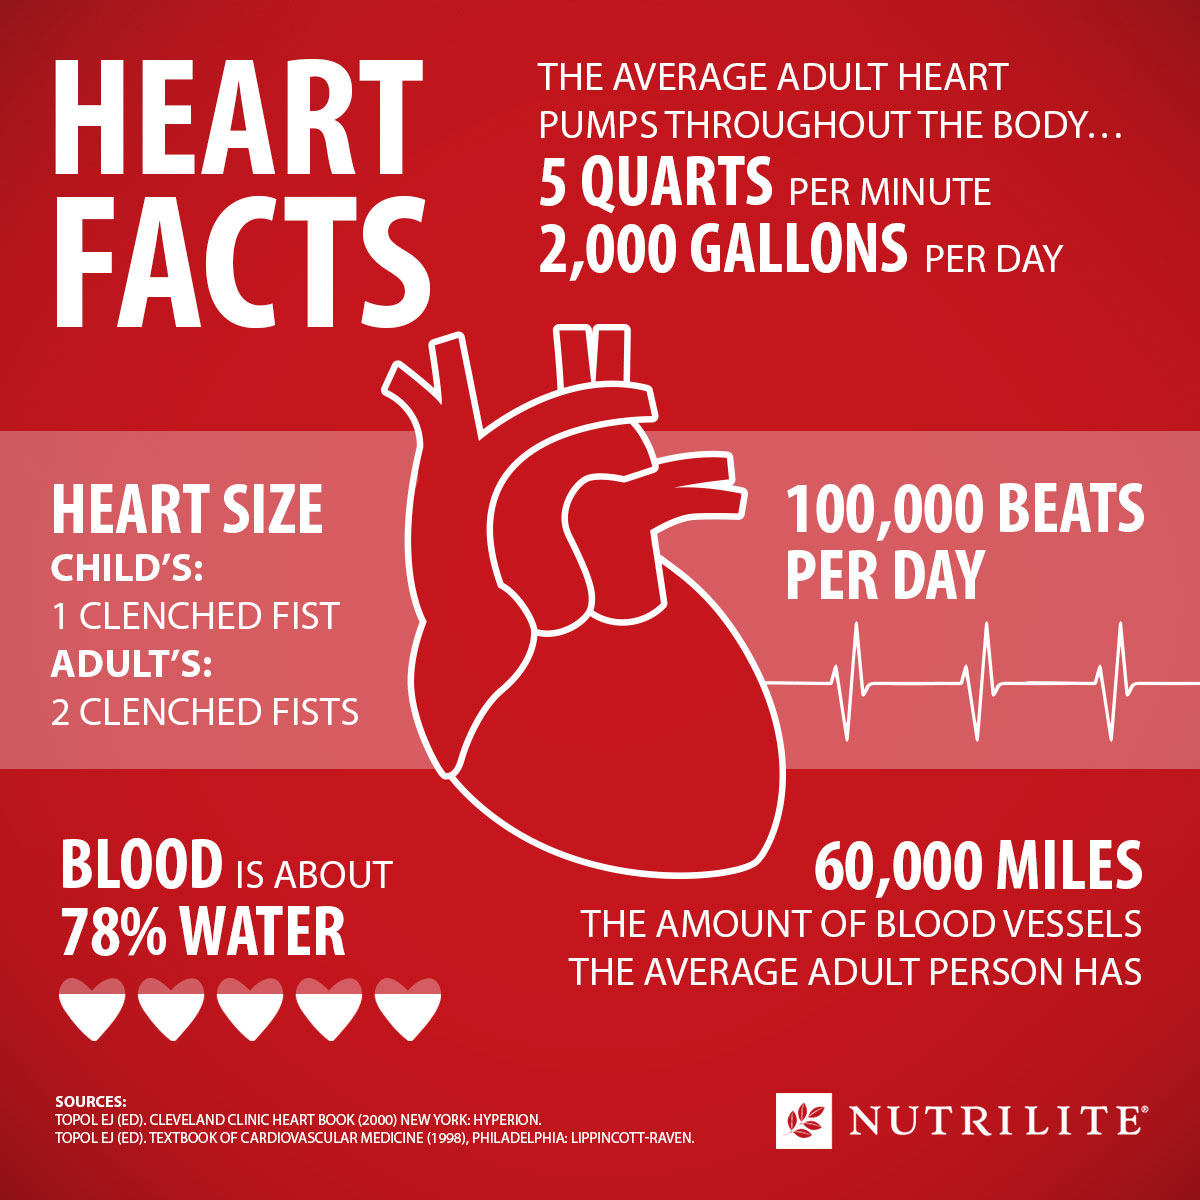 Facts About The Heart An Infographic